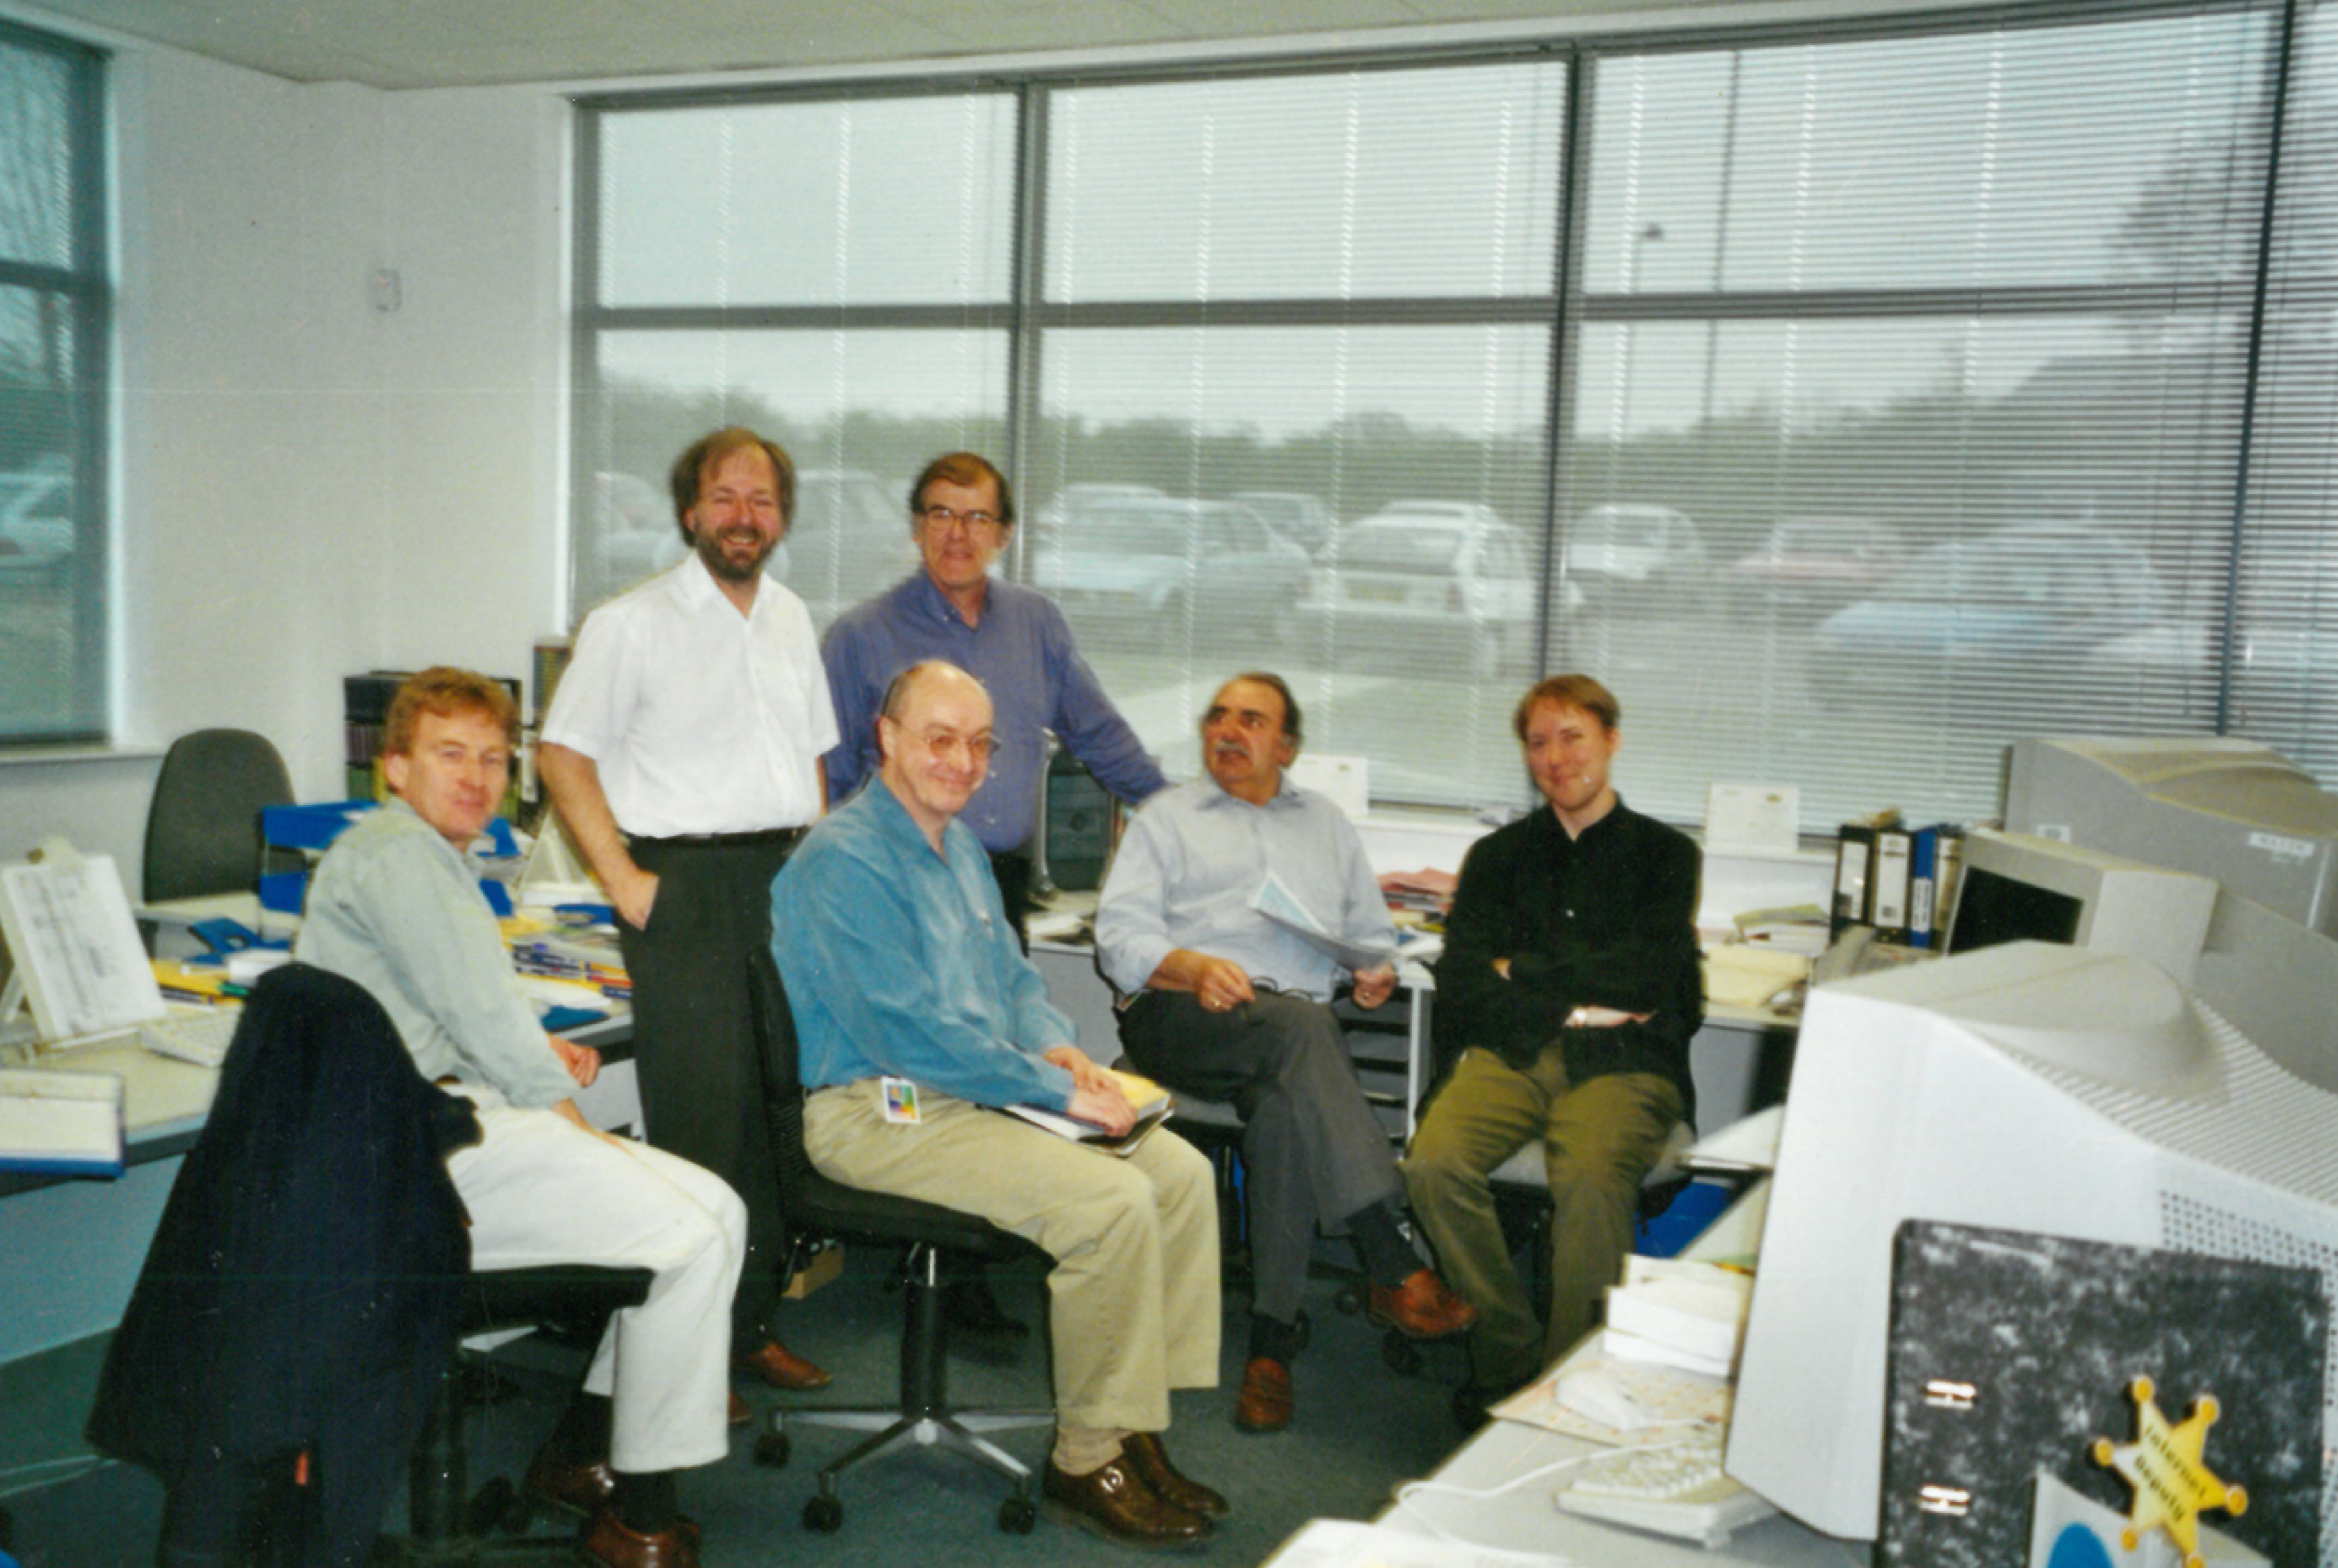 John Blanchard, 2nd from left (standing), with the Catalogue Production team in 2000.